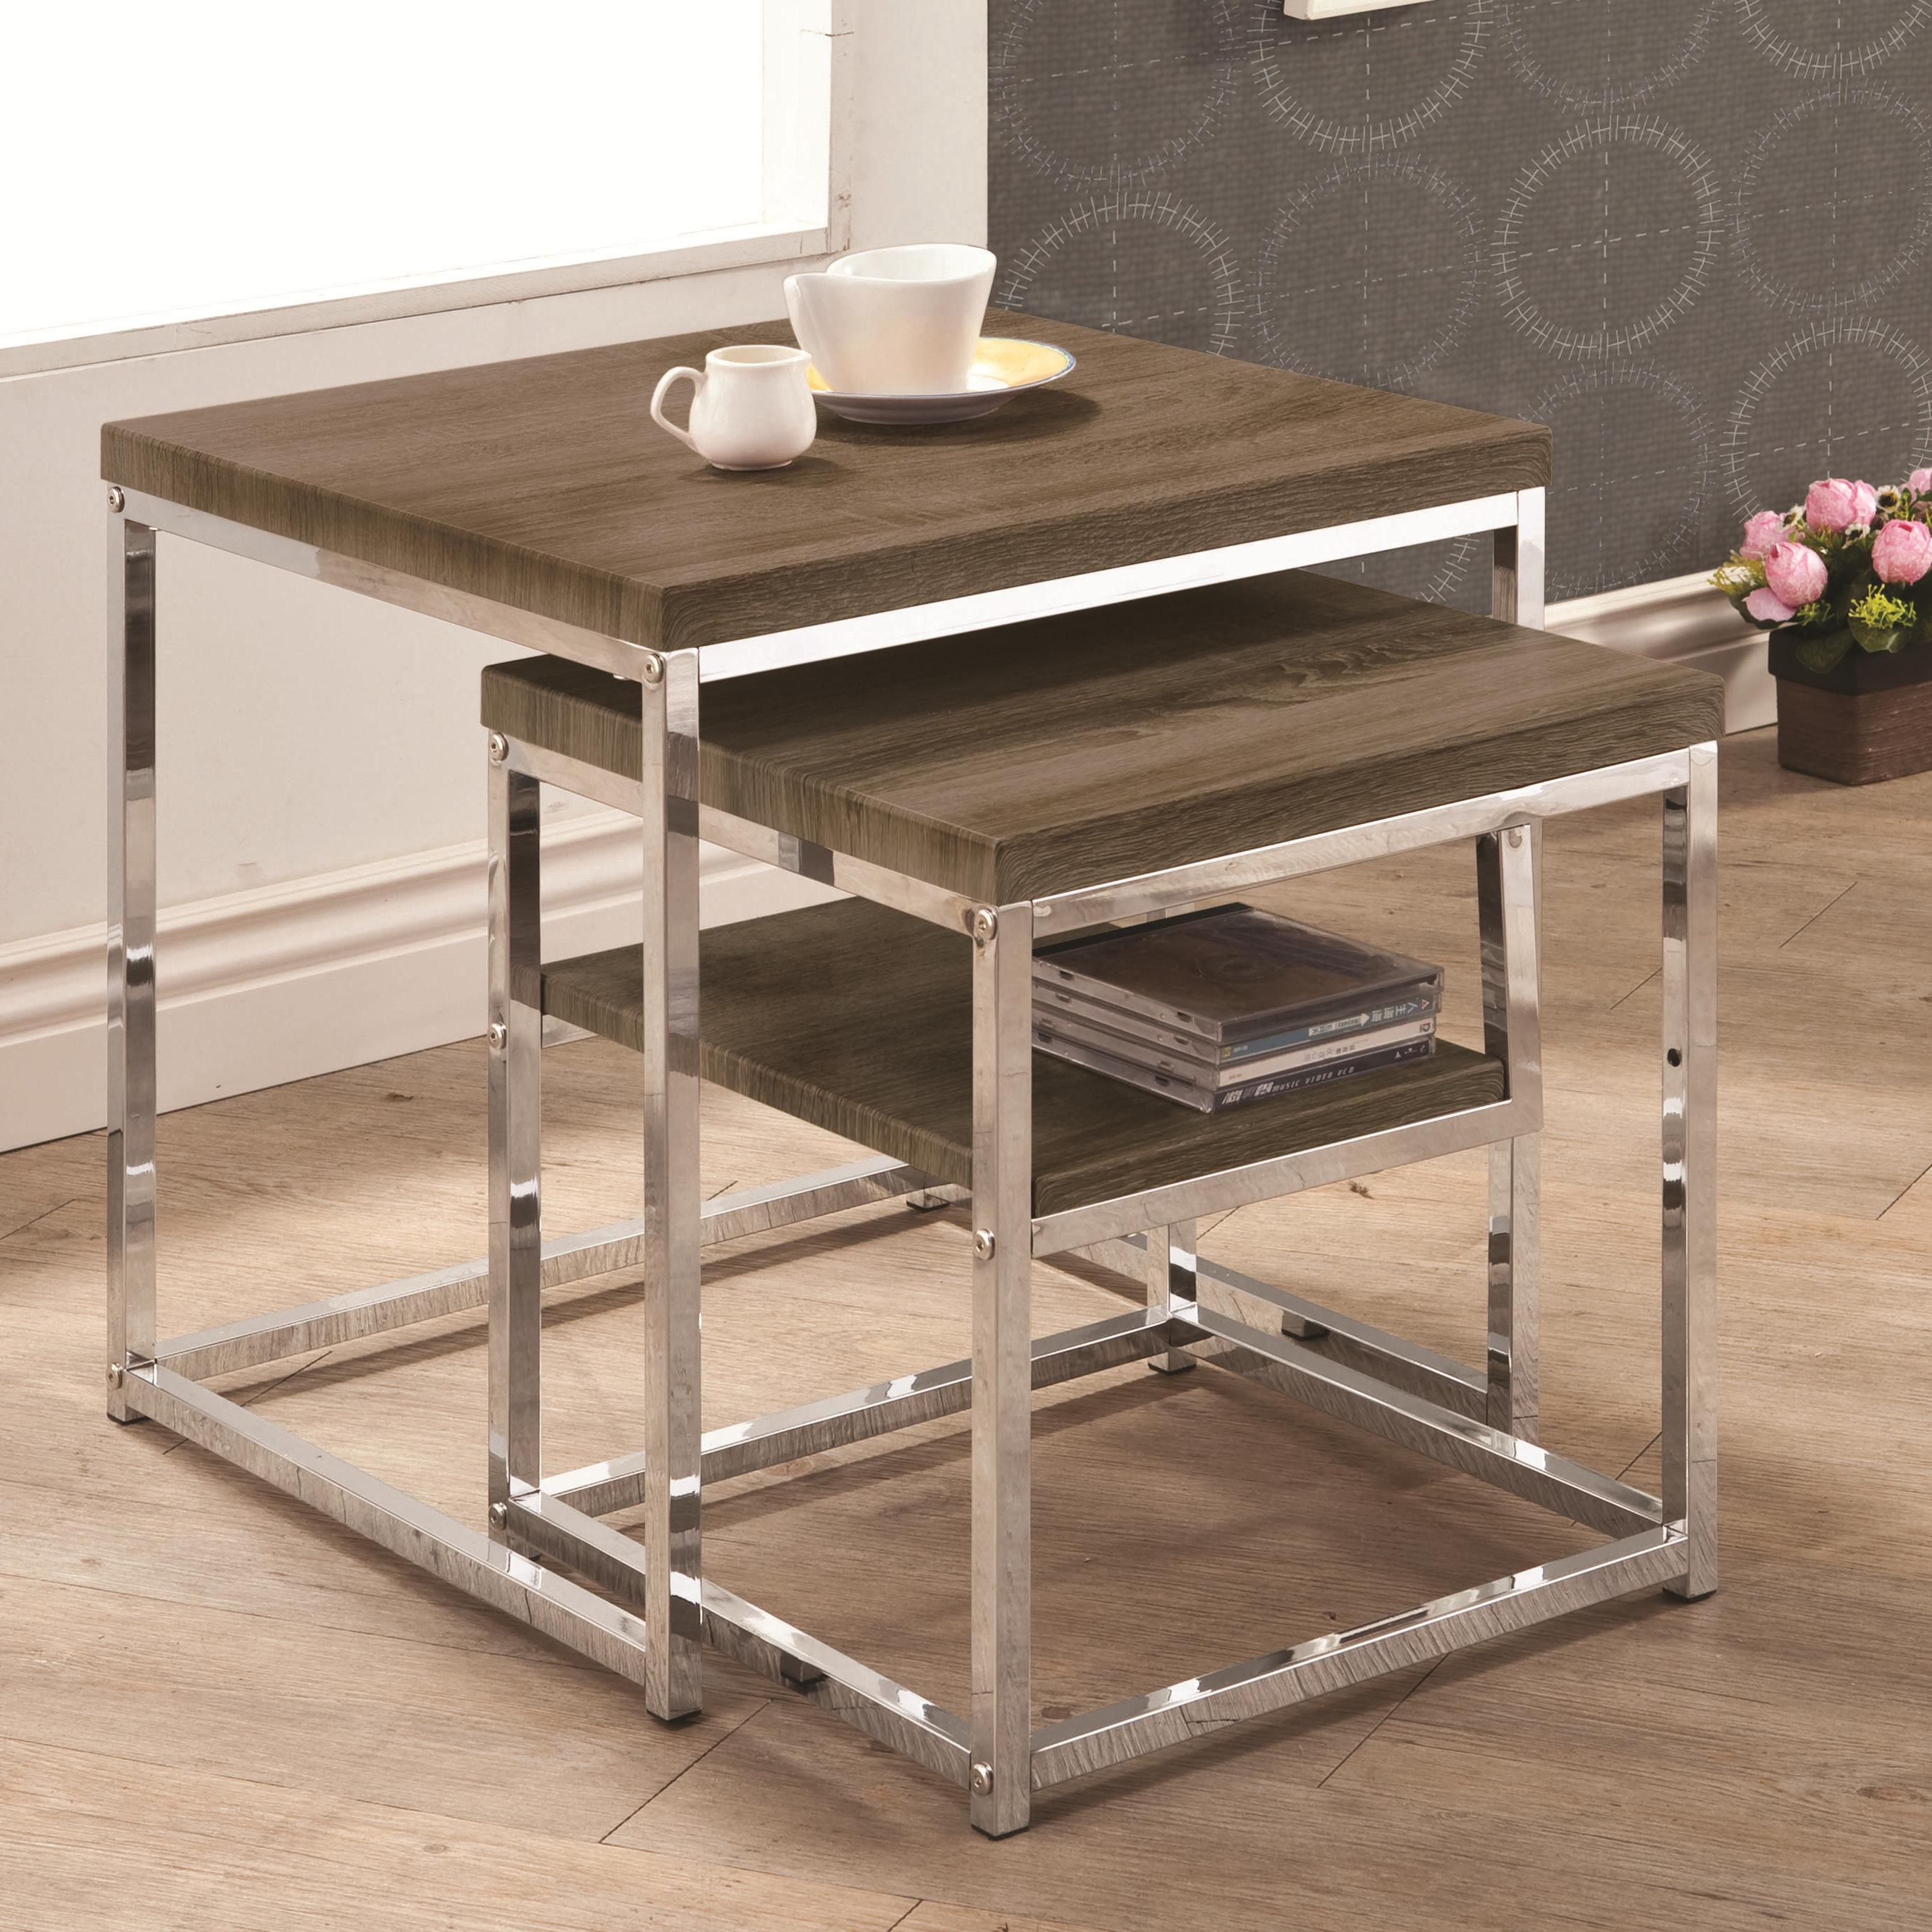 Contemporary Nesting Tables ~ Nesting tables contemporary table w weathered